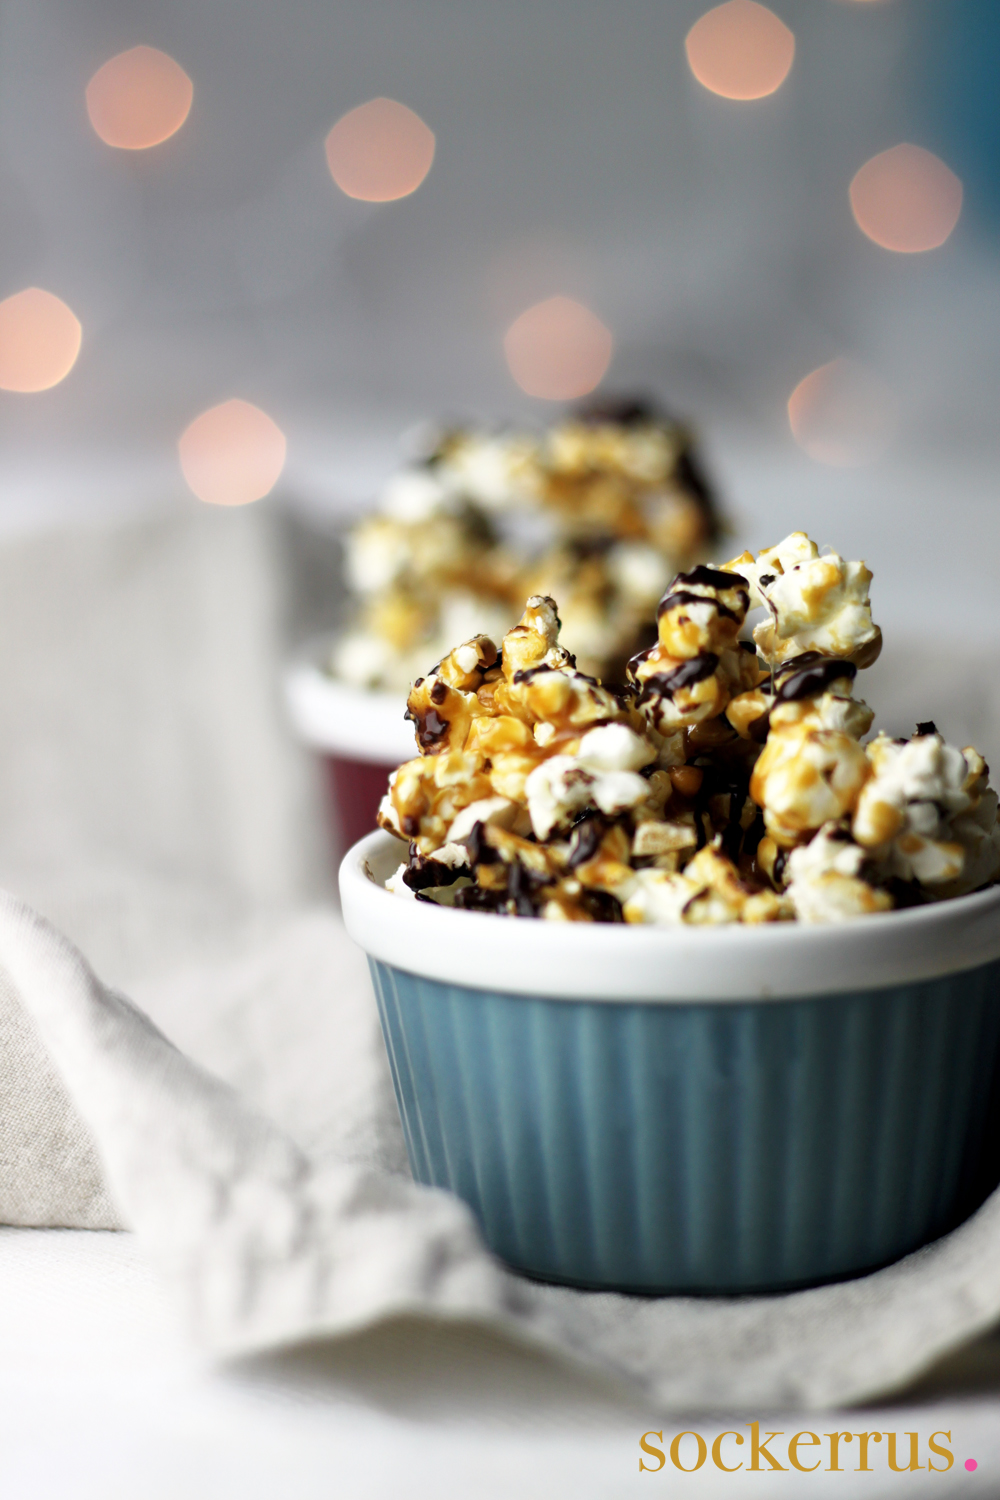 Chocolate & Caramel Popcorn